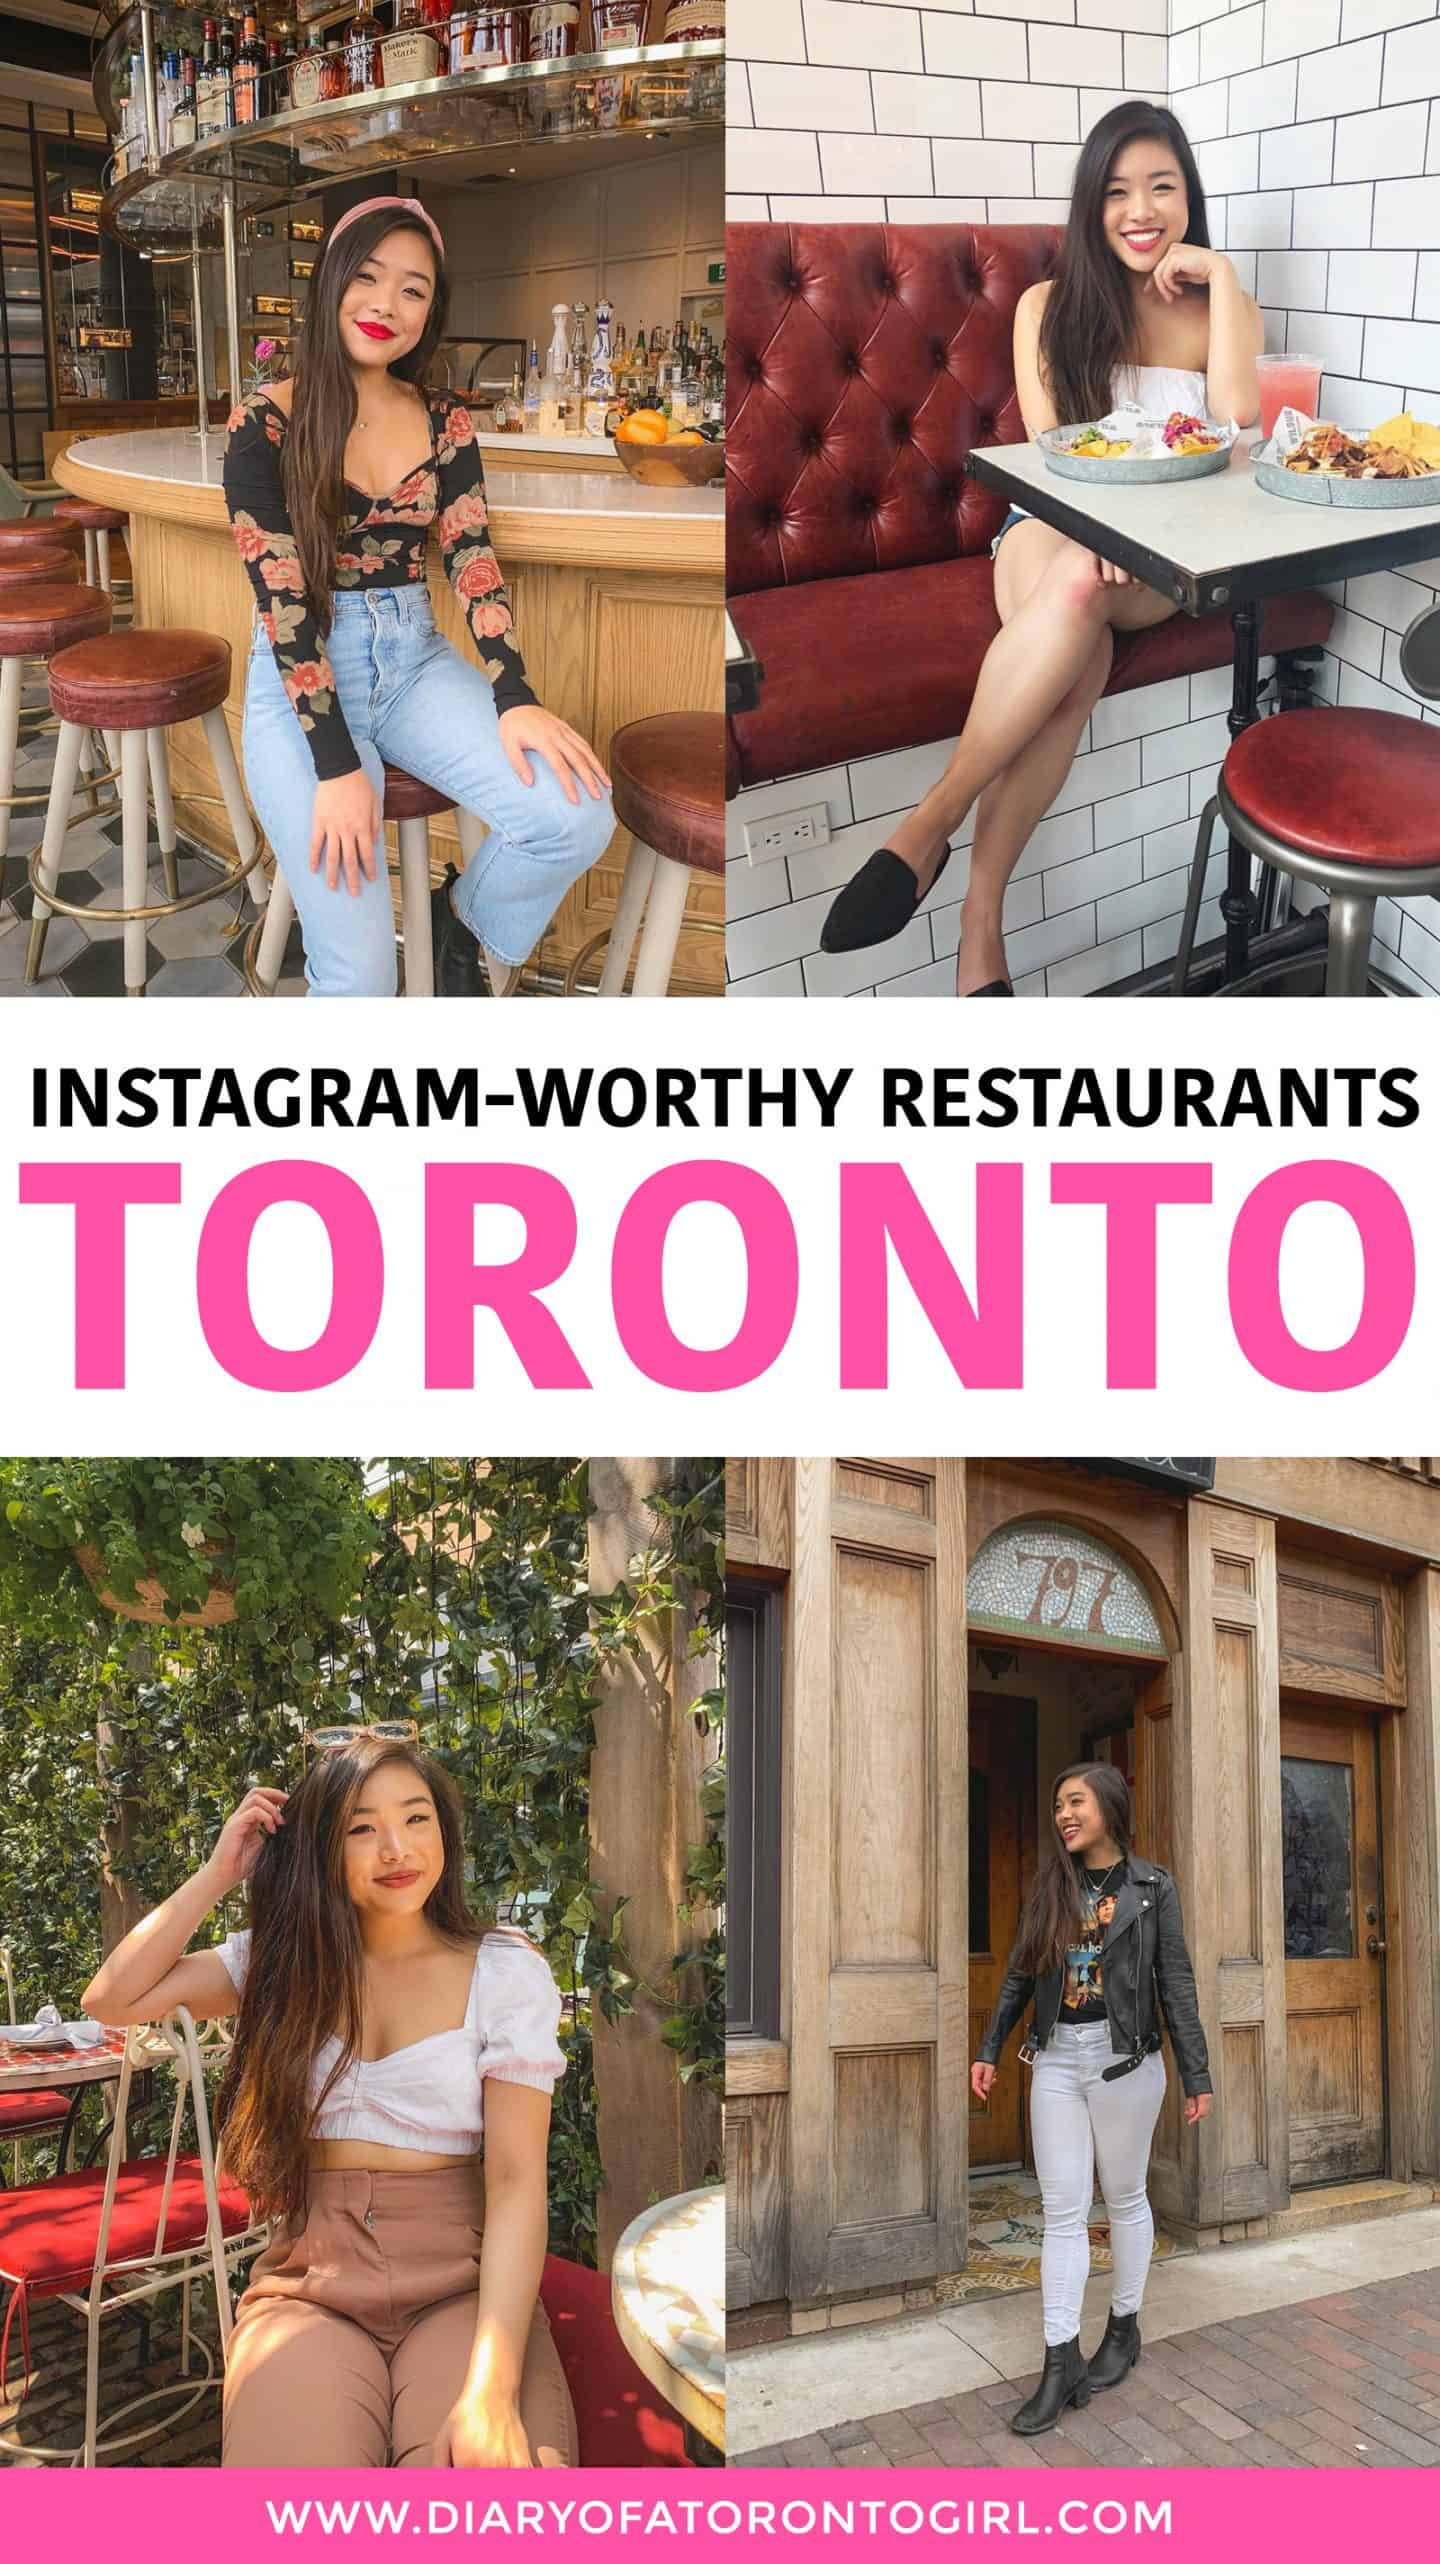 Paying a visit to Toronto and looking for some cool Instagram-worthy spots? Here are some of the most Instagrammable and aesthetically-pleasing restaurants to visit in Toronto, Canada!